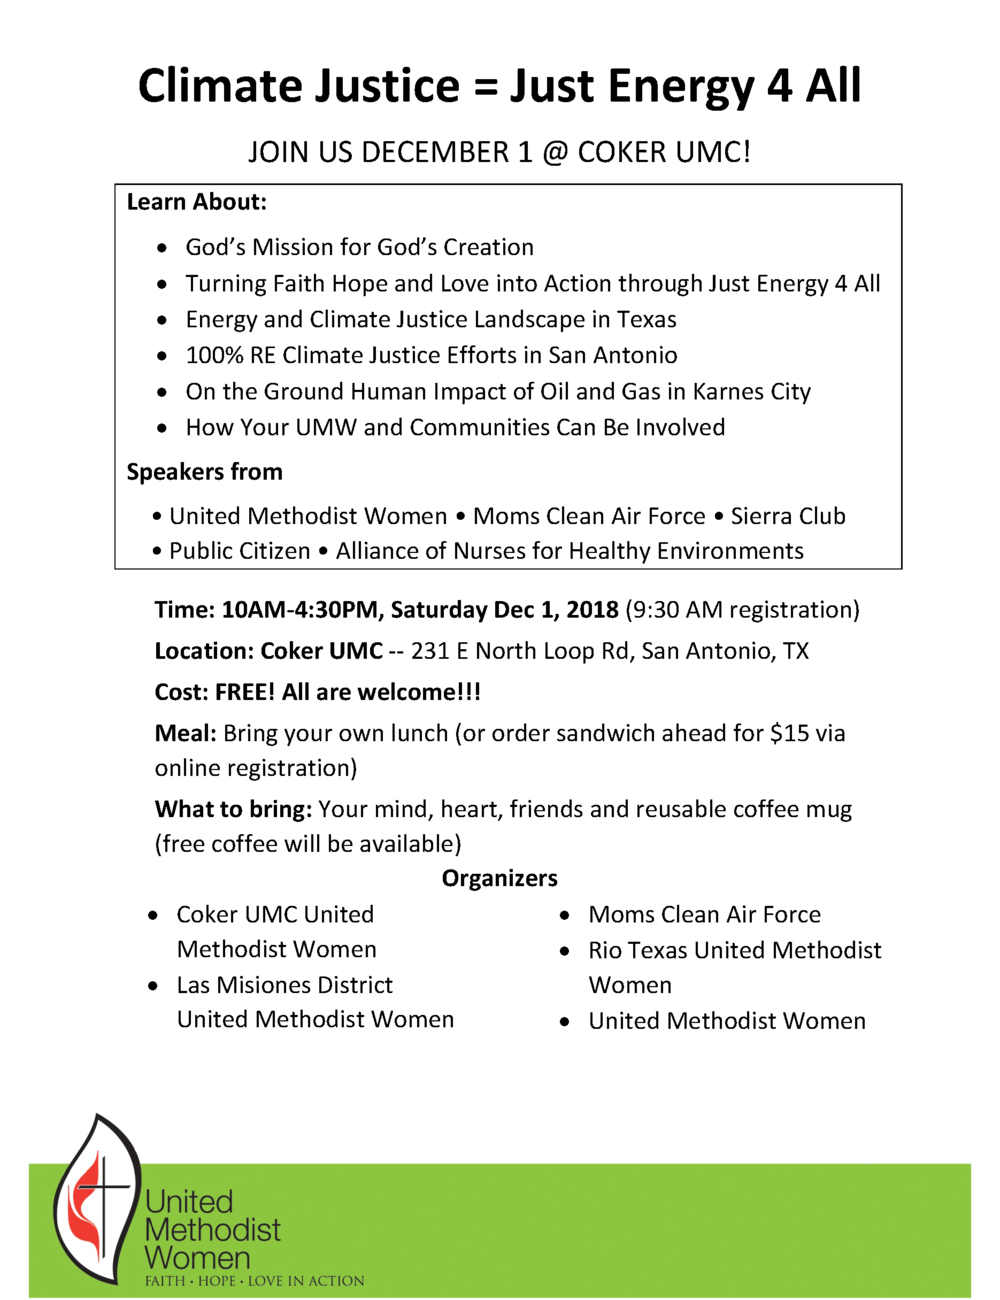 UMW Just Energy 4 All Flyer 2018.12.0128585 (1).png